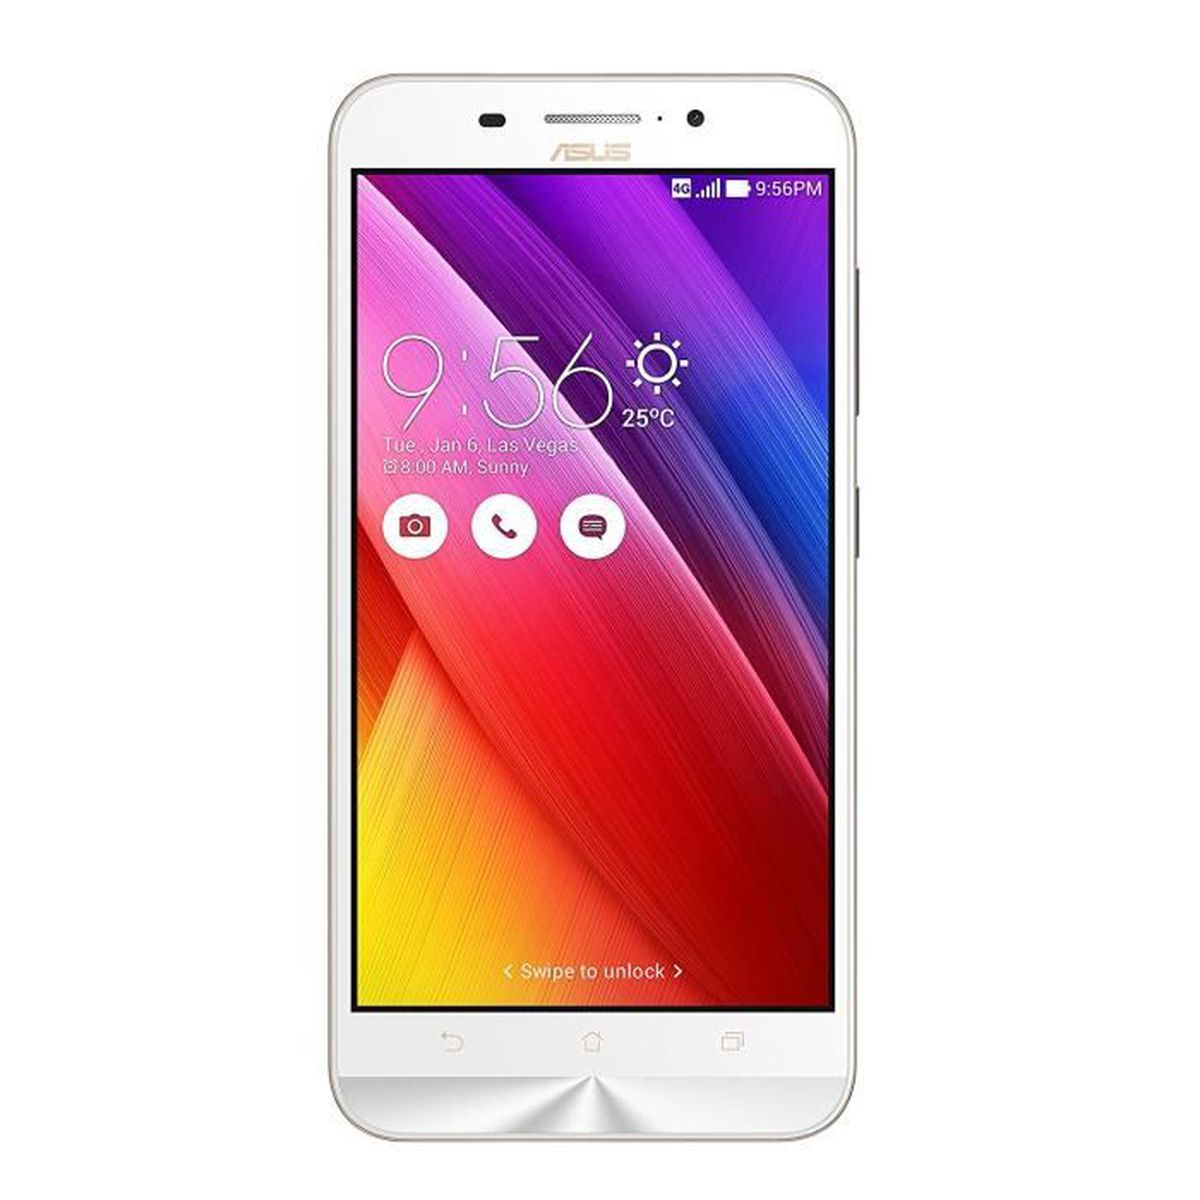 asus zenfone max zc550kl 32go smartphone d bloqu blanc achat smartphone pas cher avis et. Black Bedroom Furniture Sets. Home Design Ideas